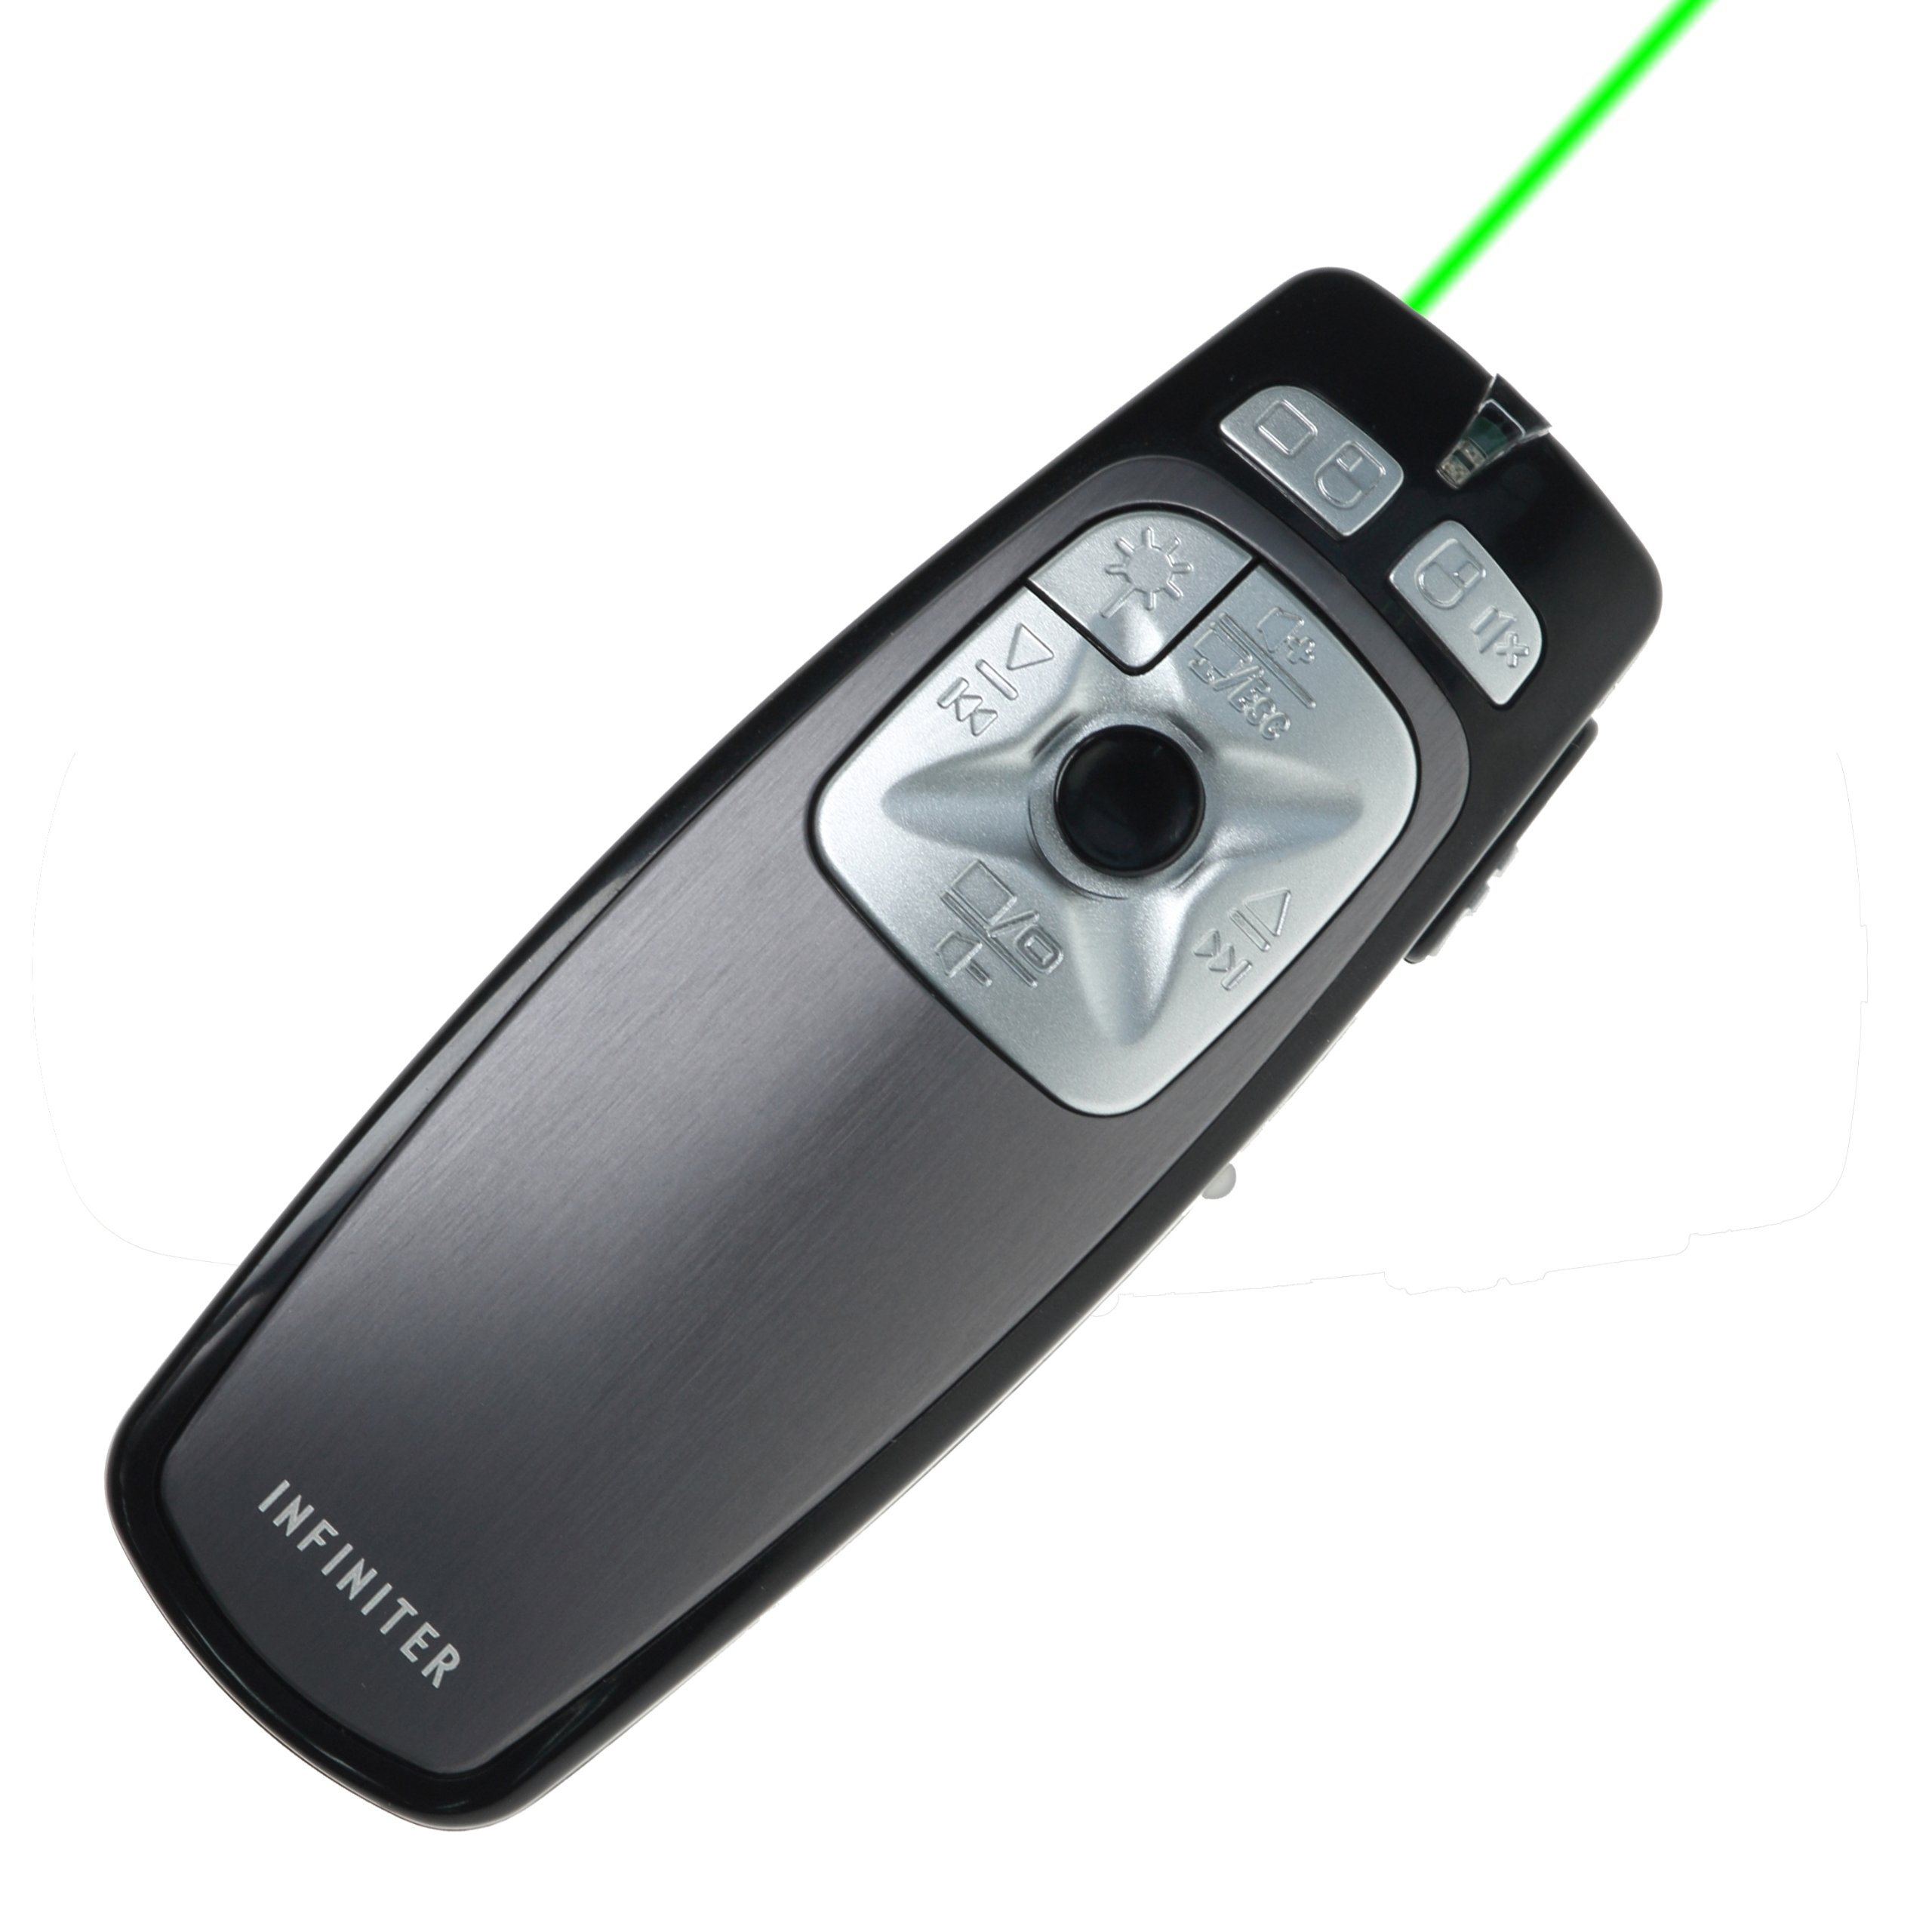 INFINITER LR-22GR Wireless Remote/Mouse/Presenter/Media Player/Quick Time Remote Controller for PC/Mac with Green Laser Pointer